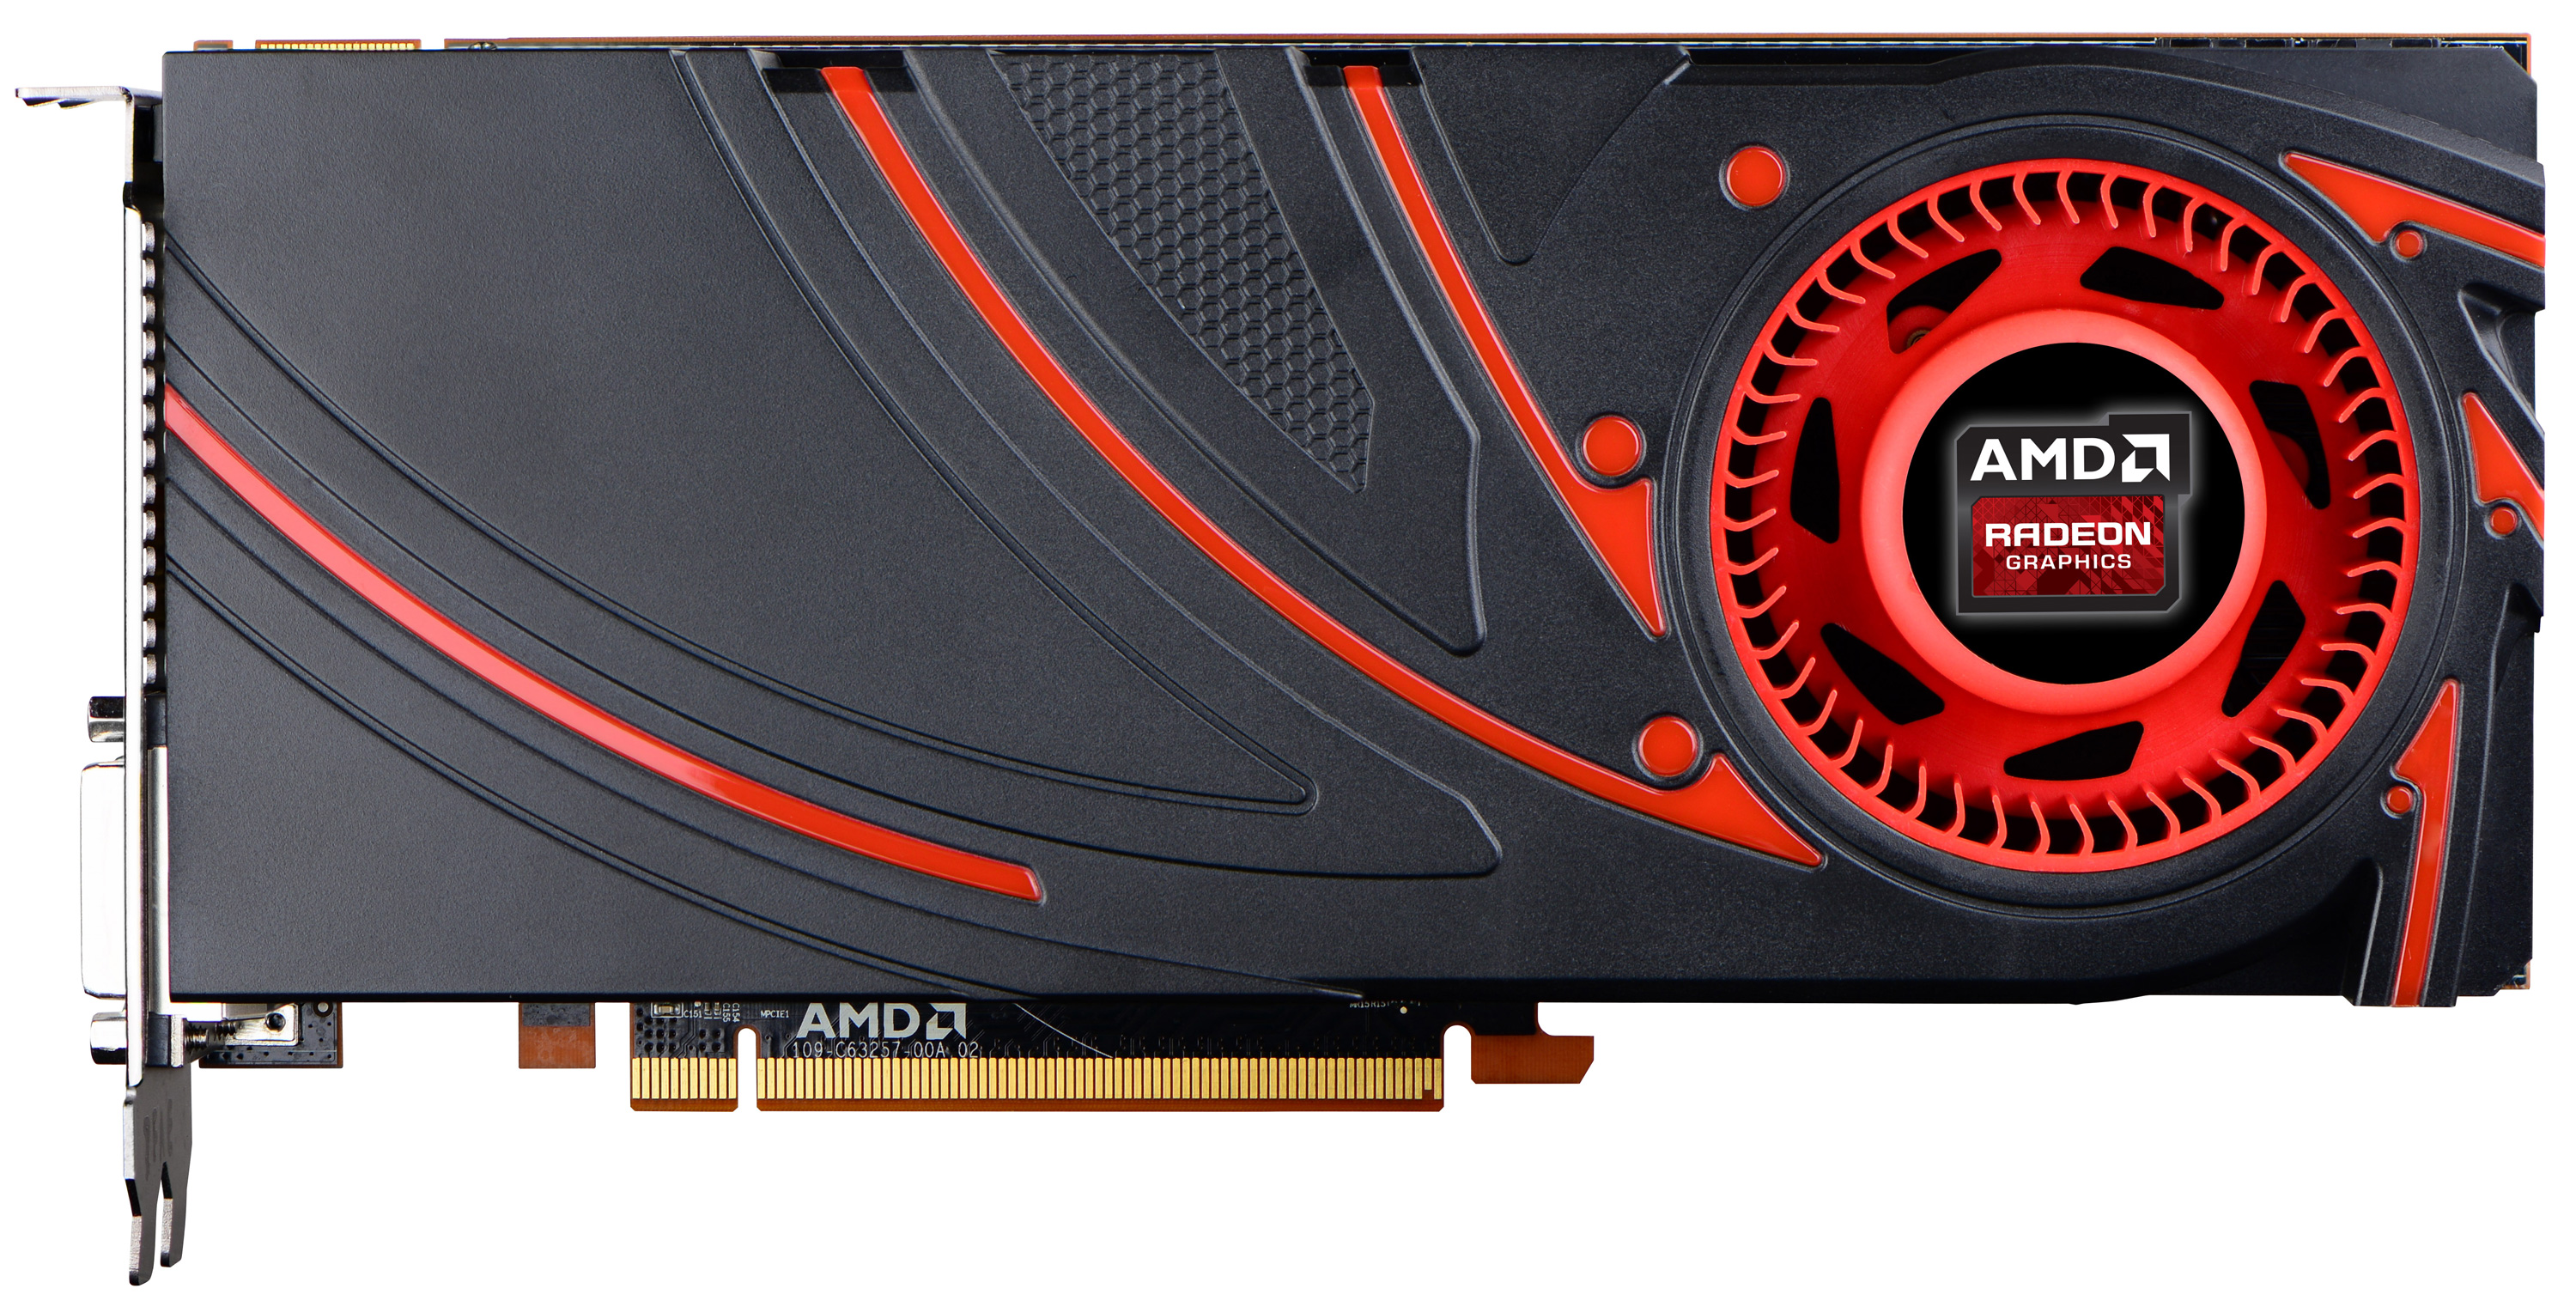 Amd radeon r9 200 series price / List of commands for